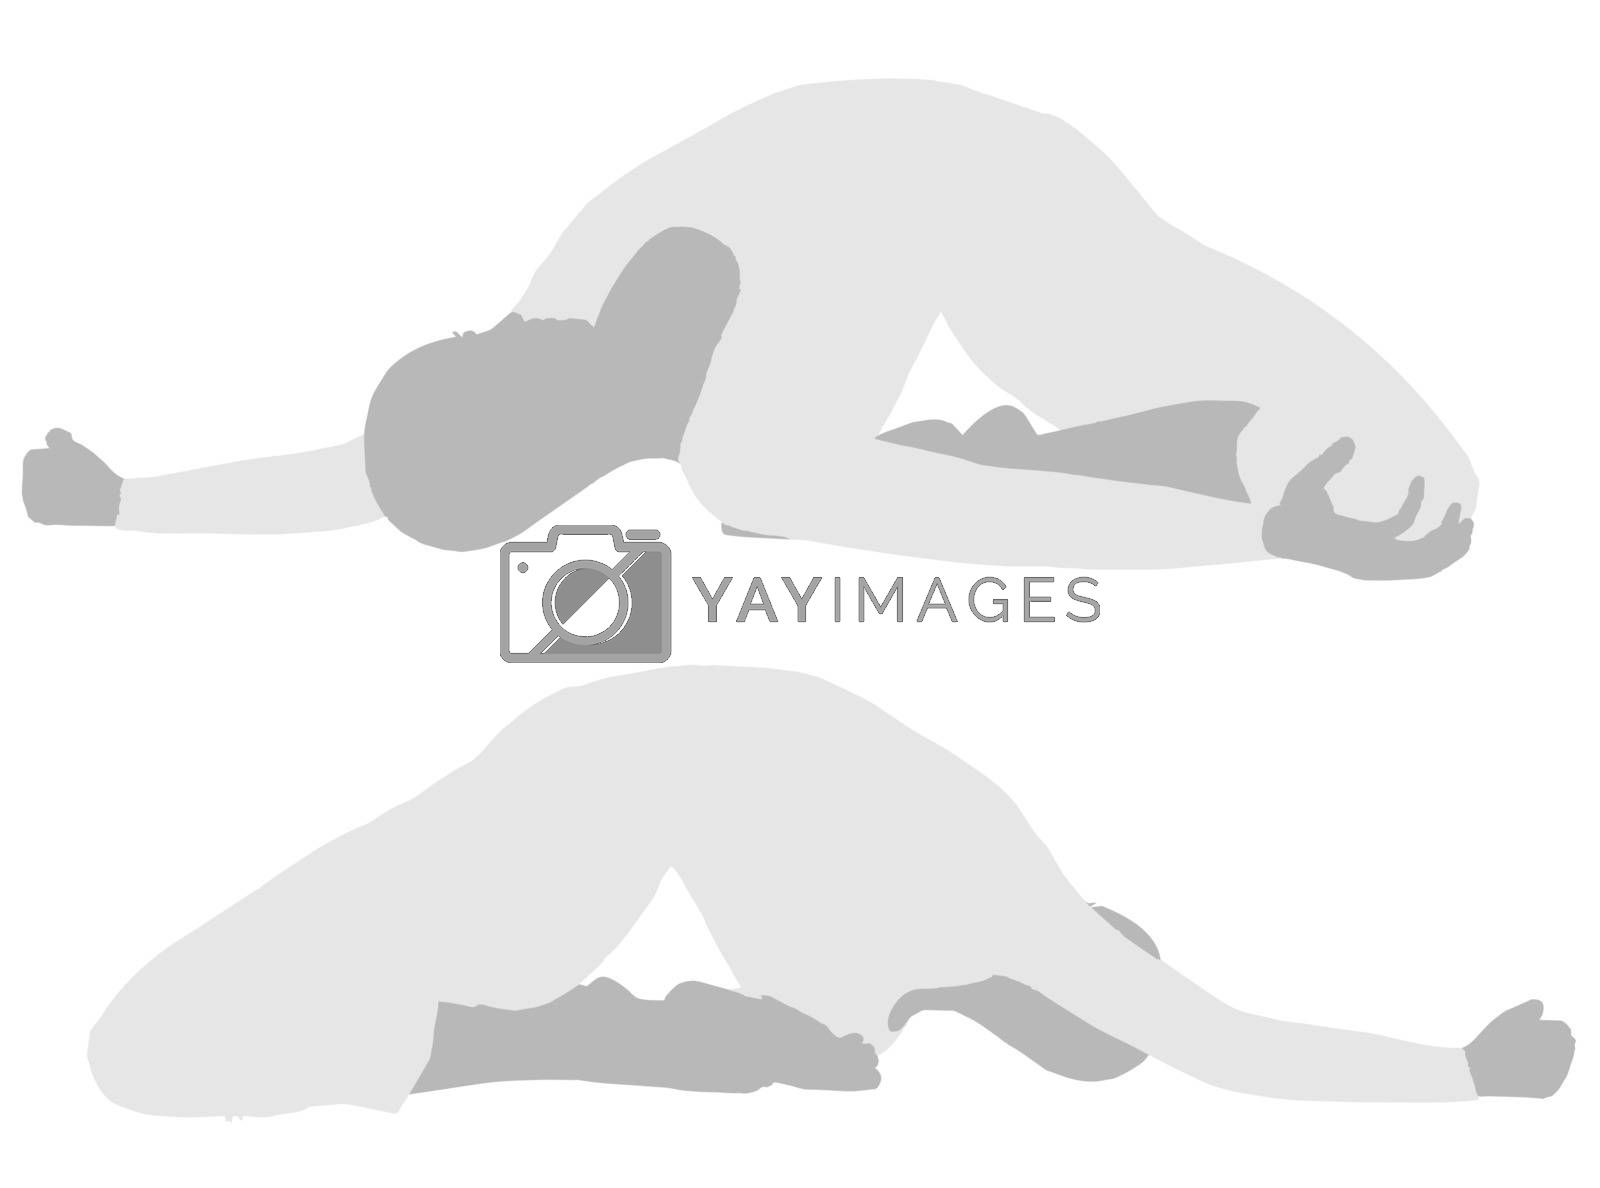 EPS 10 vector illustration of woman silhouette in Collapsed Backwards Pose